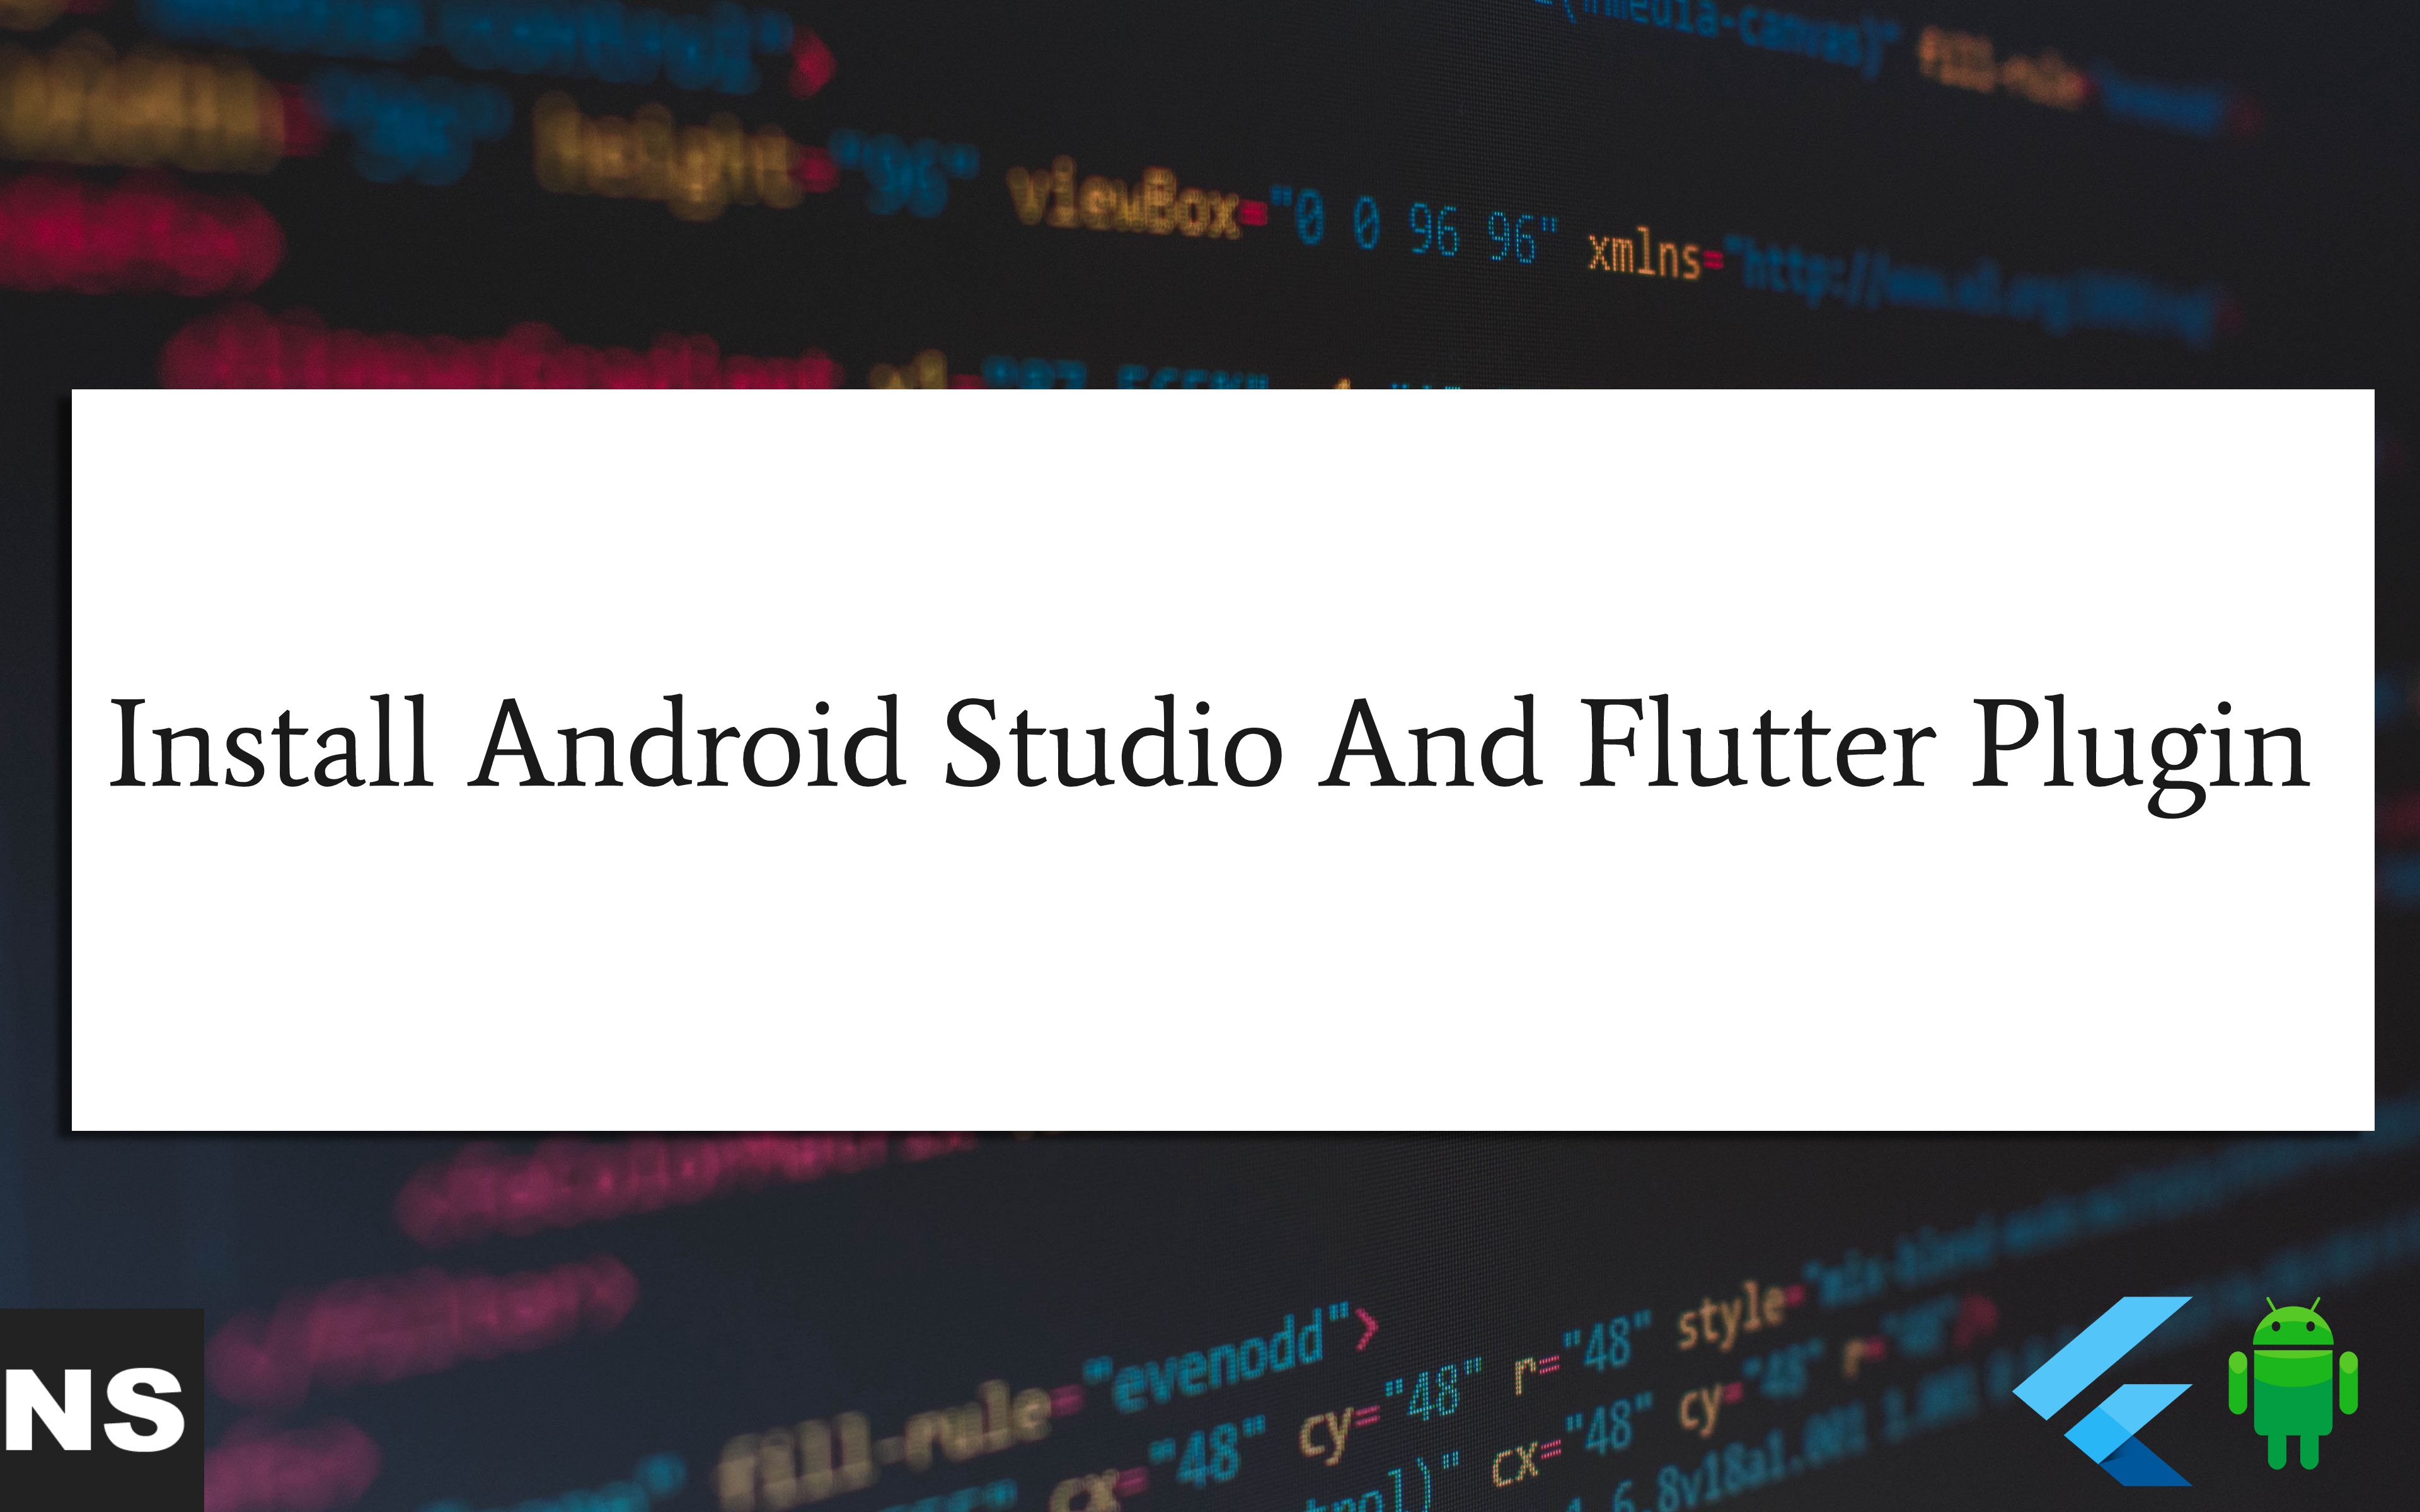 How To Install Android Studio And Flutter Plugin